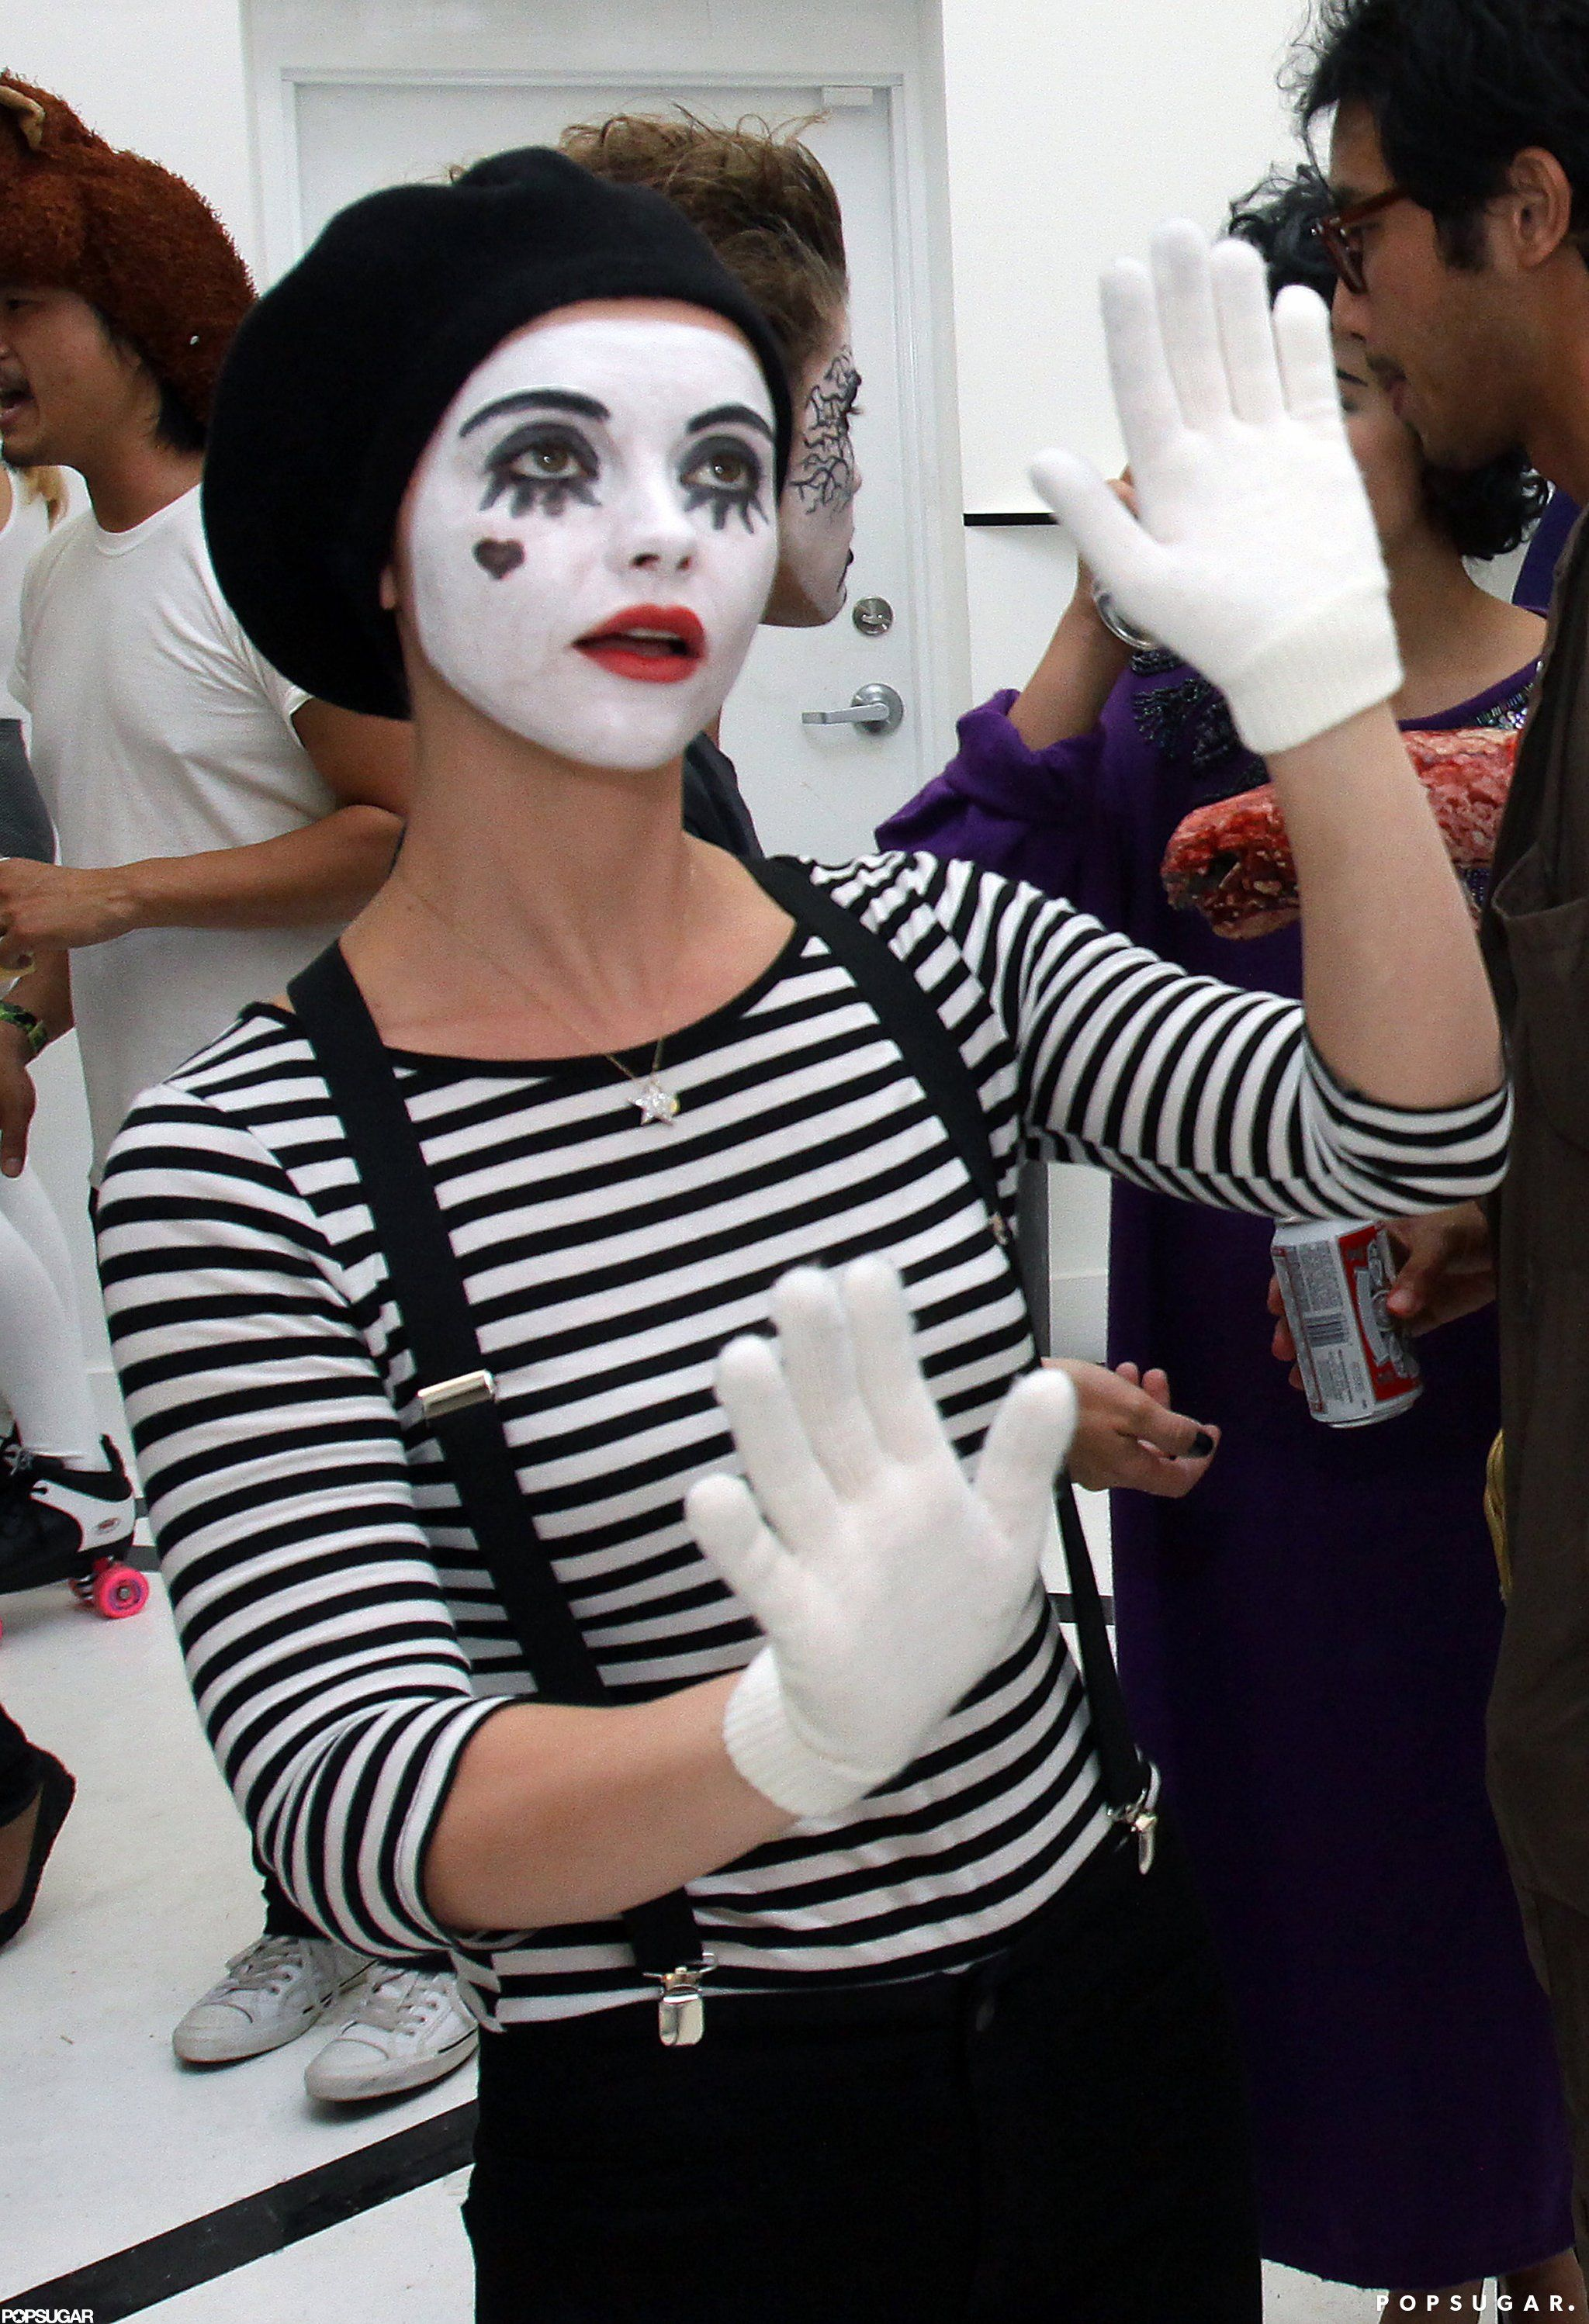 over 300 celebrity halloween costumes! | halloween | pinterest